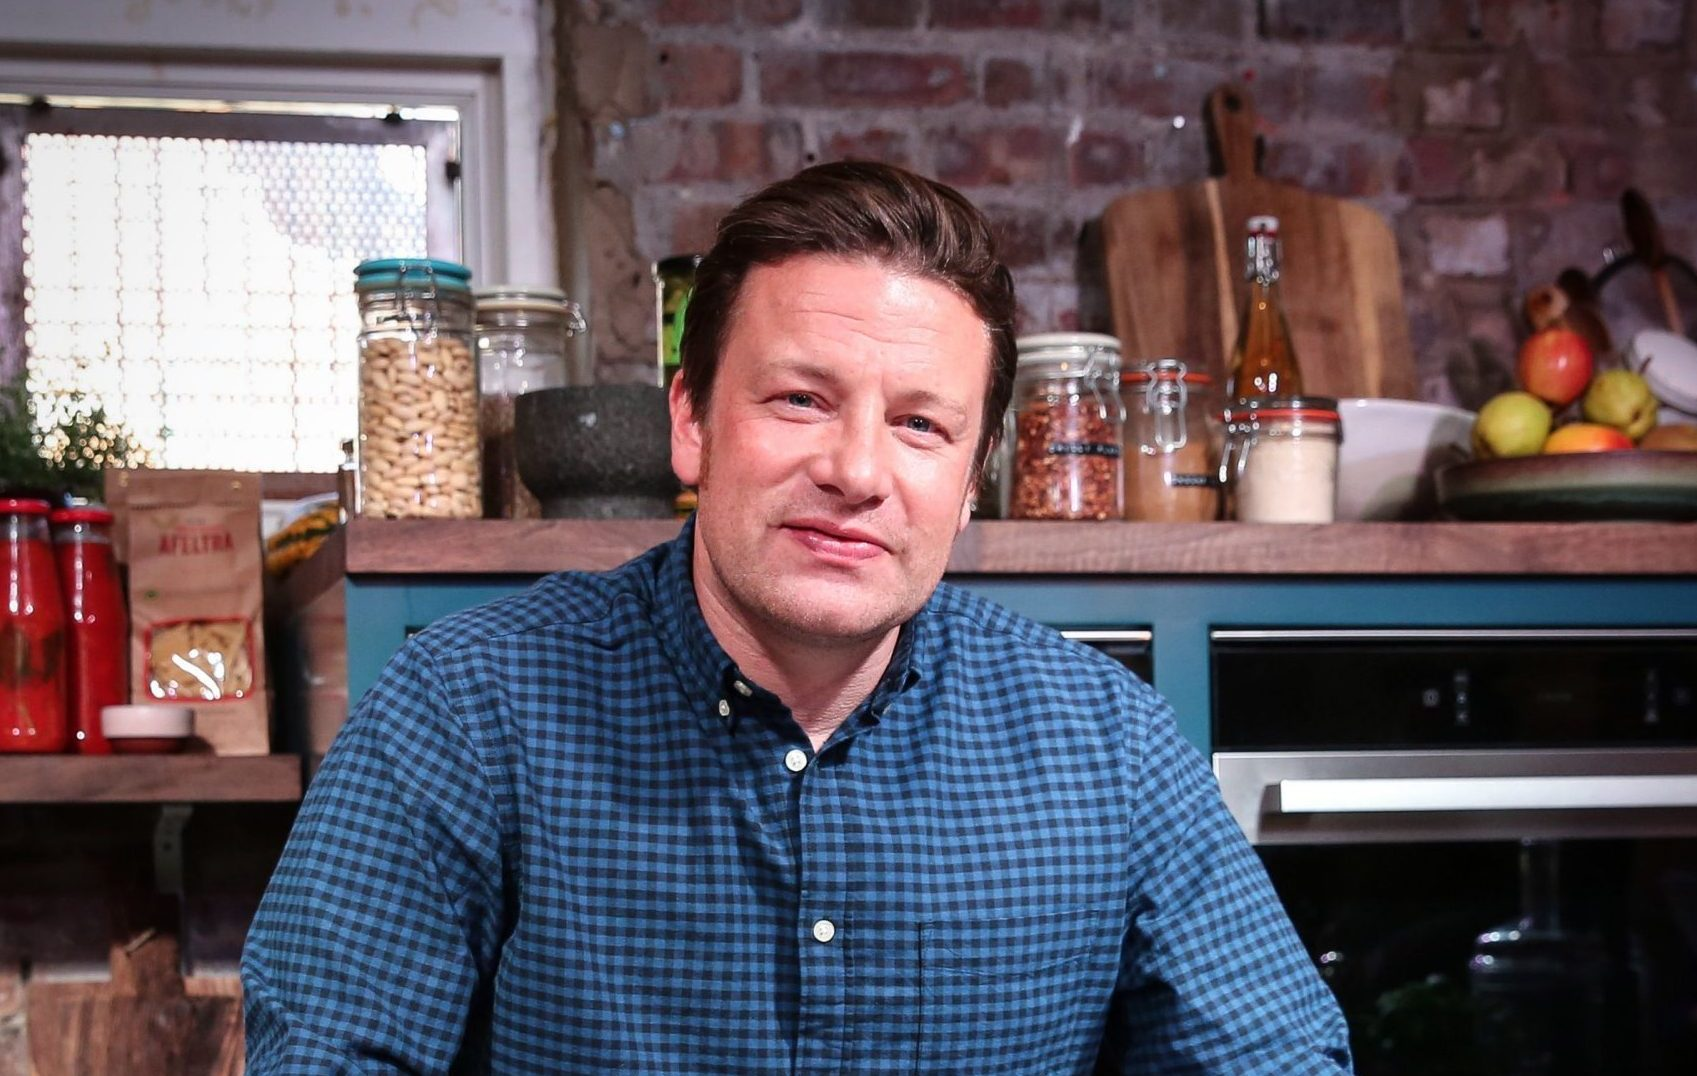 EDITORIAL USE ONLY Jamie Oliver at the opening of an unusual cafE in East London, where diners will be able to enjoy a tasting menu of dishes inspired by the most commonly wasted ingredients in the UK.